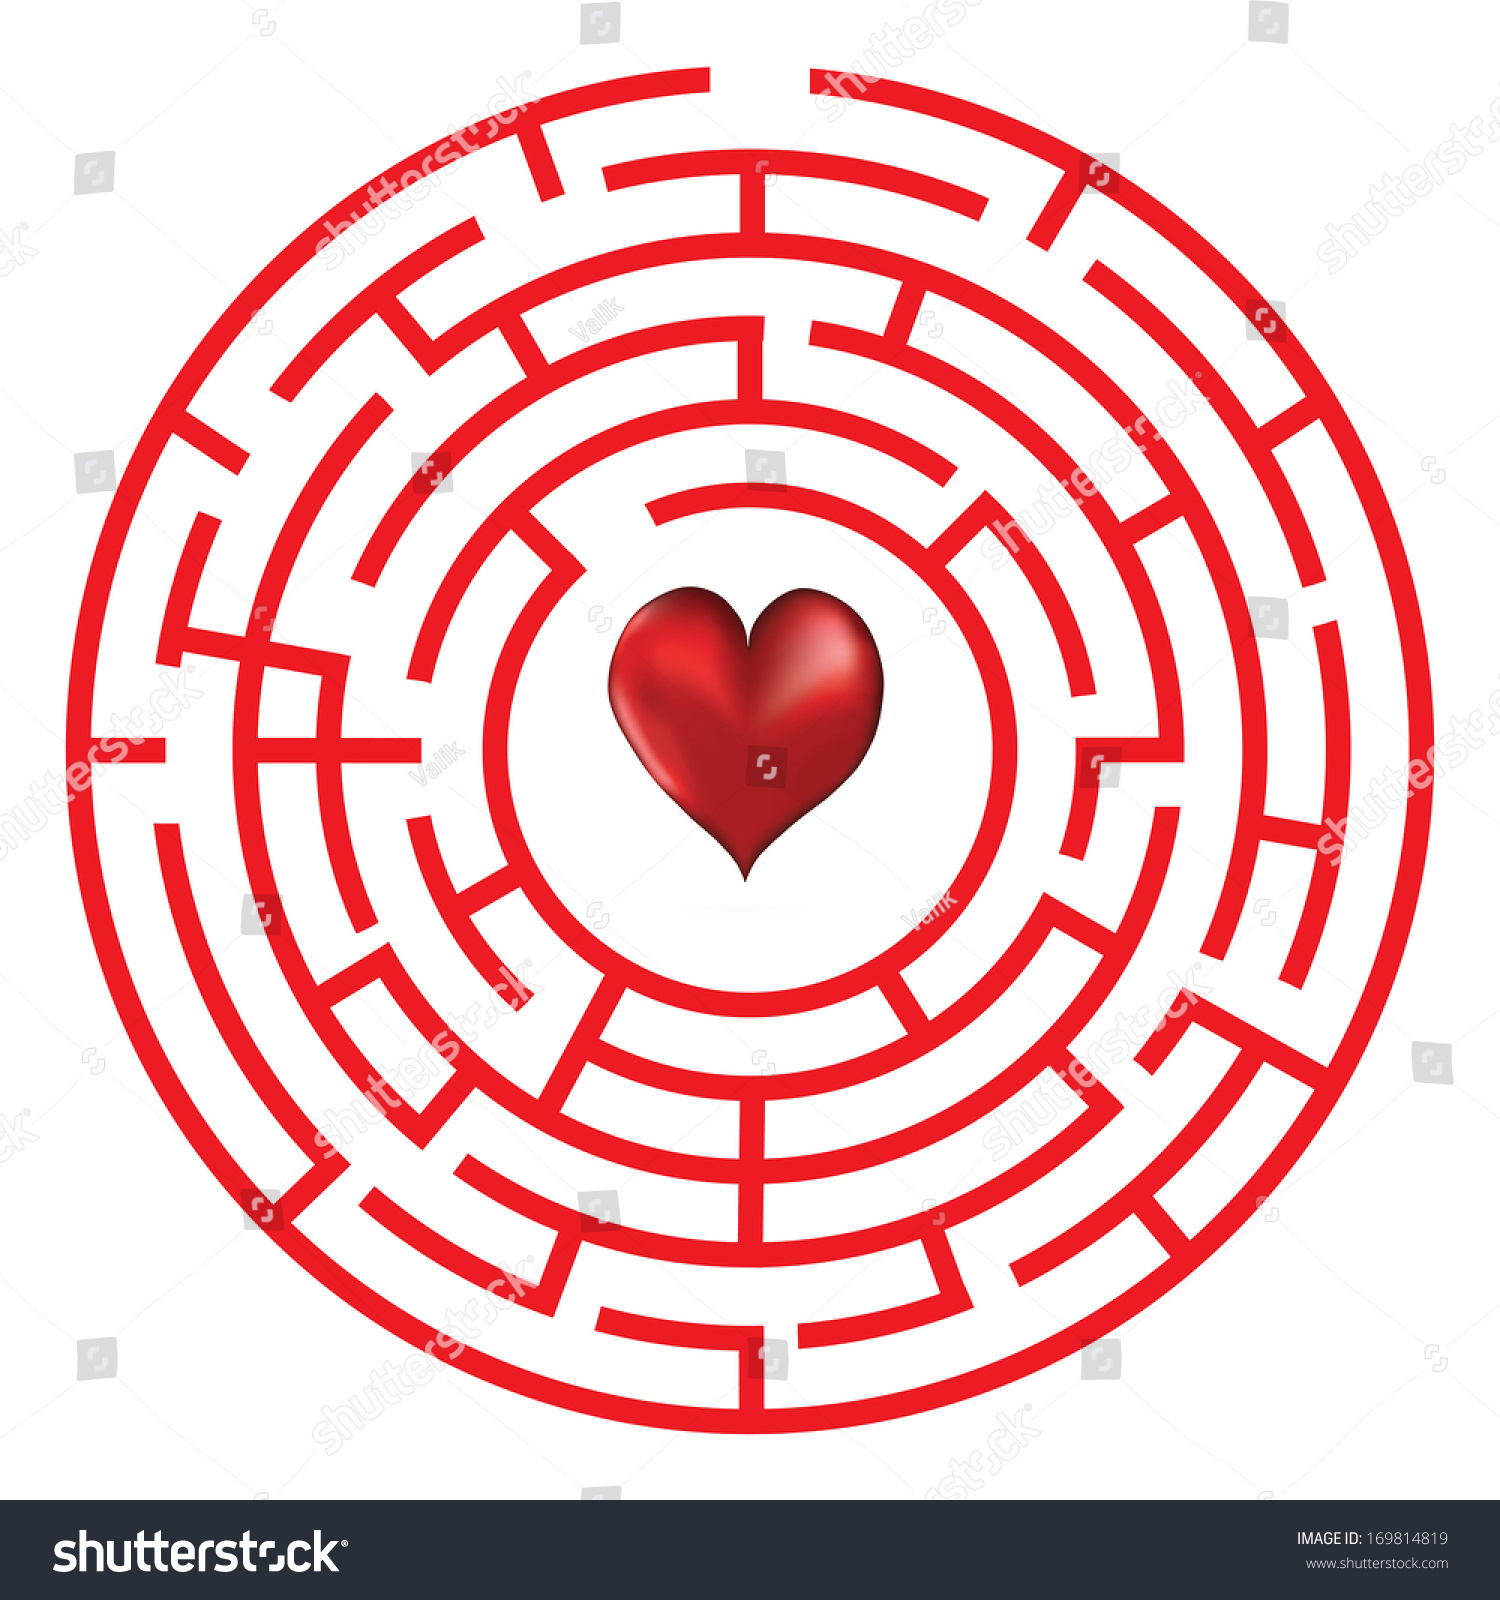 Love Heart Maze Or Labyrinth Valentineu0027s Day Vector Illustration.